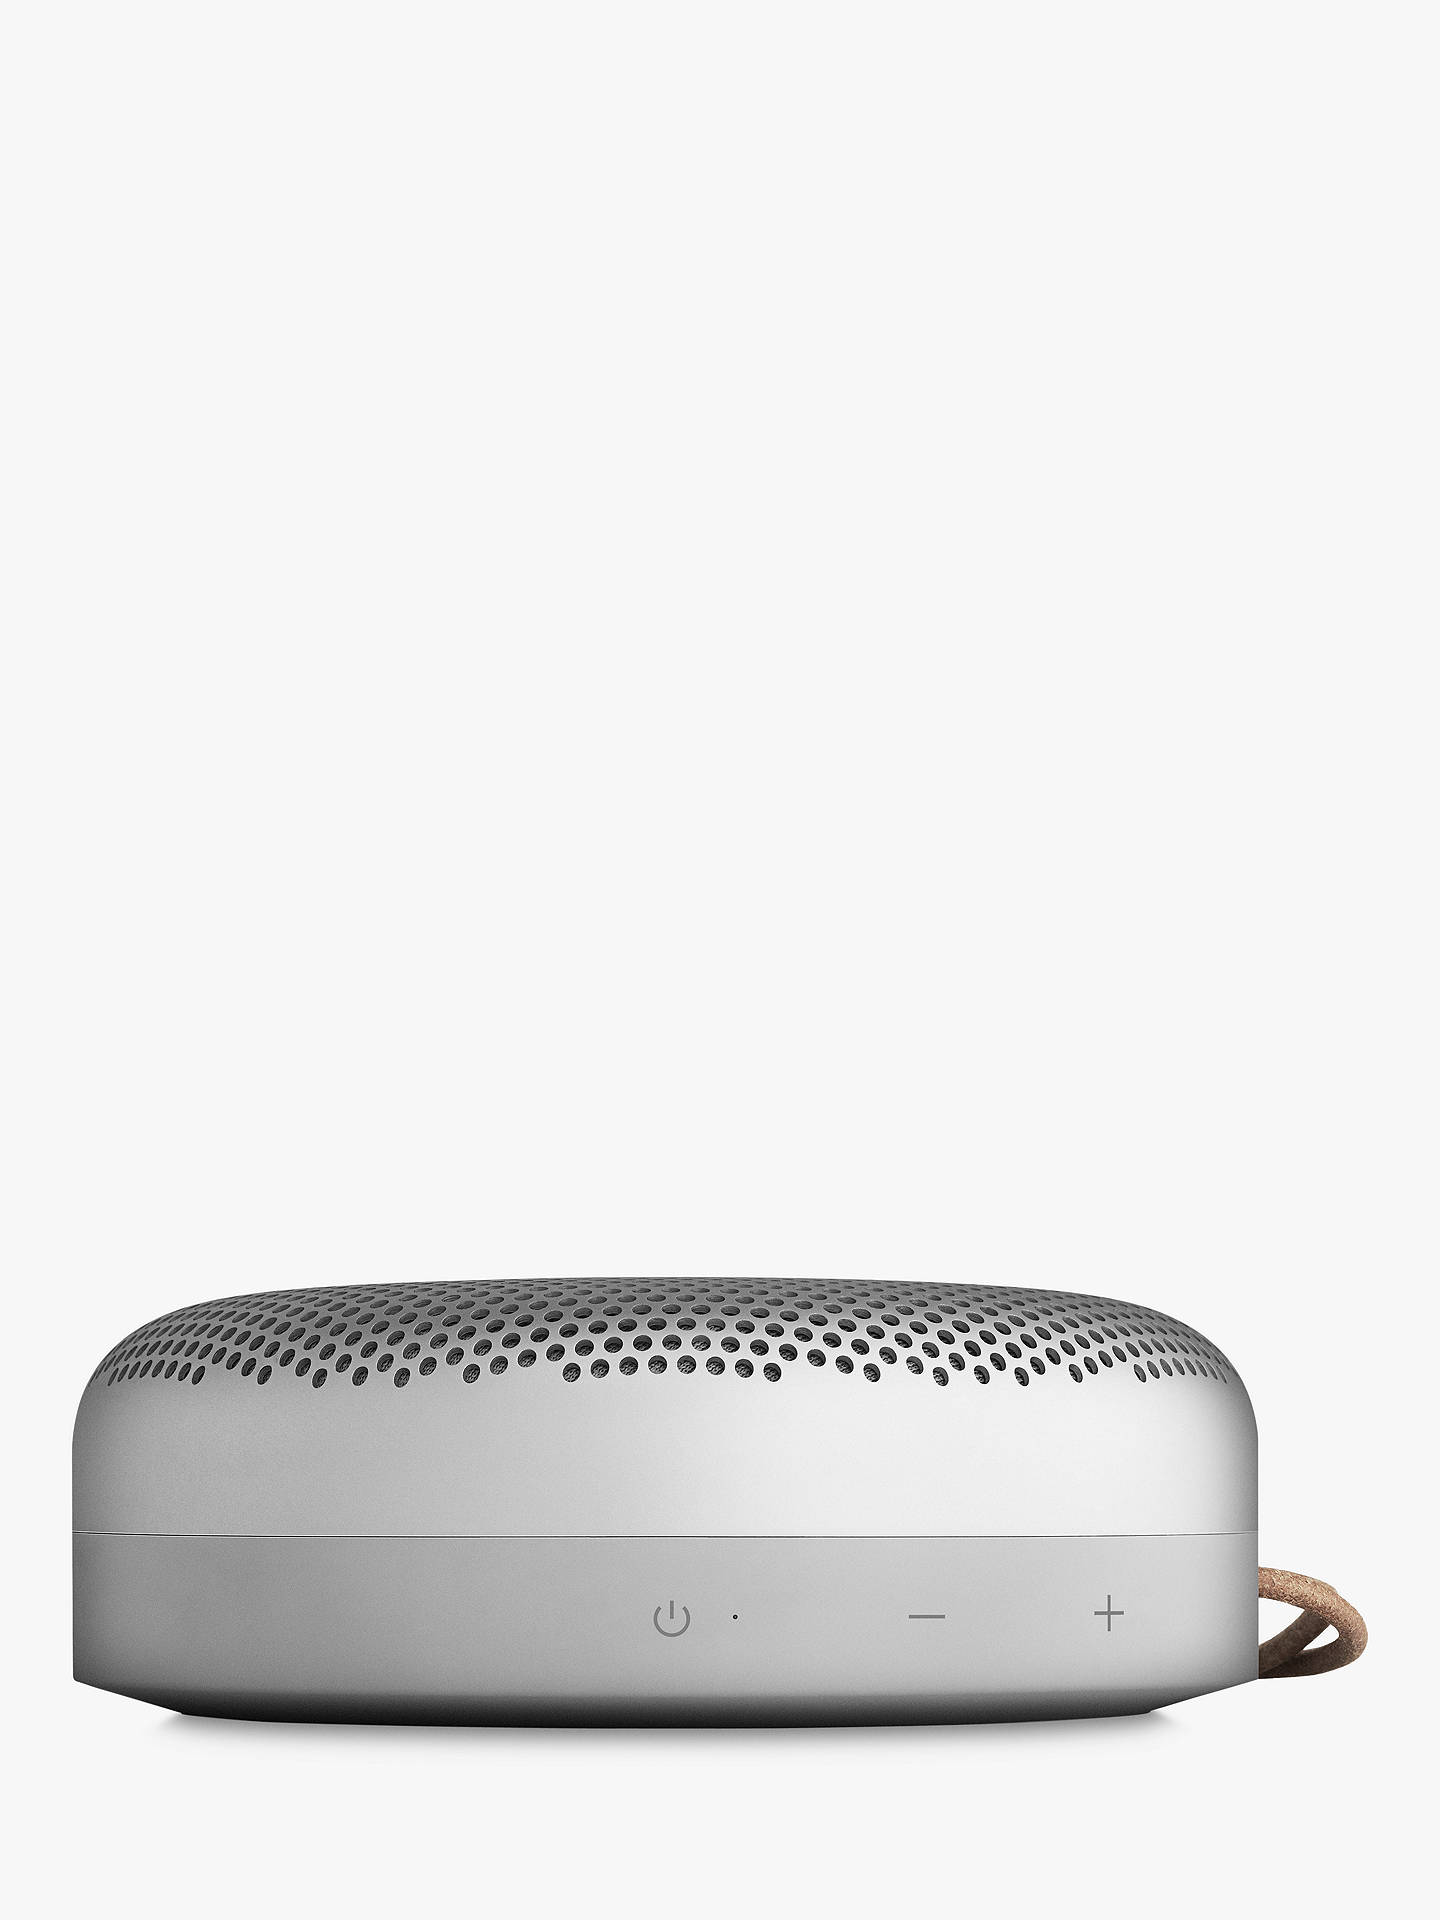 BuyB&O PLAY by Bang & Olufsen Beoplay A1 Portable Bluetooth Speaker, Silver Online at johnlewis.com